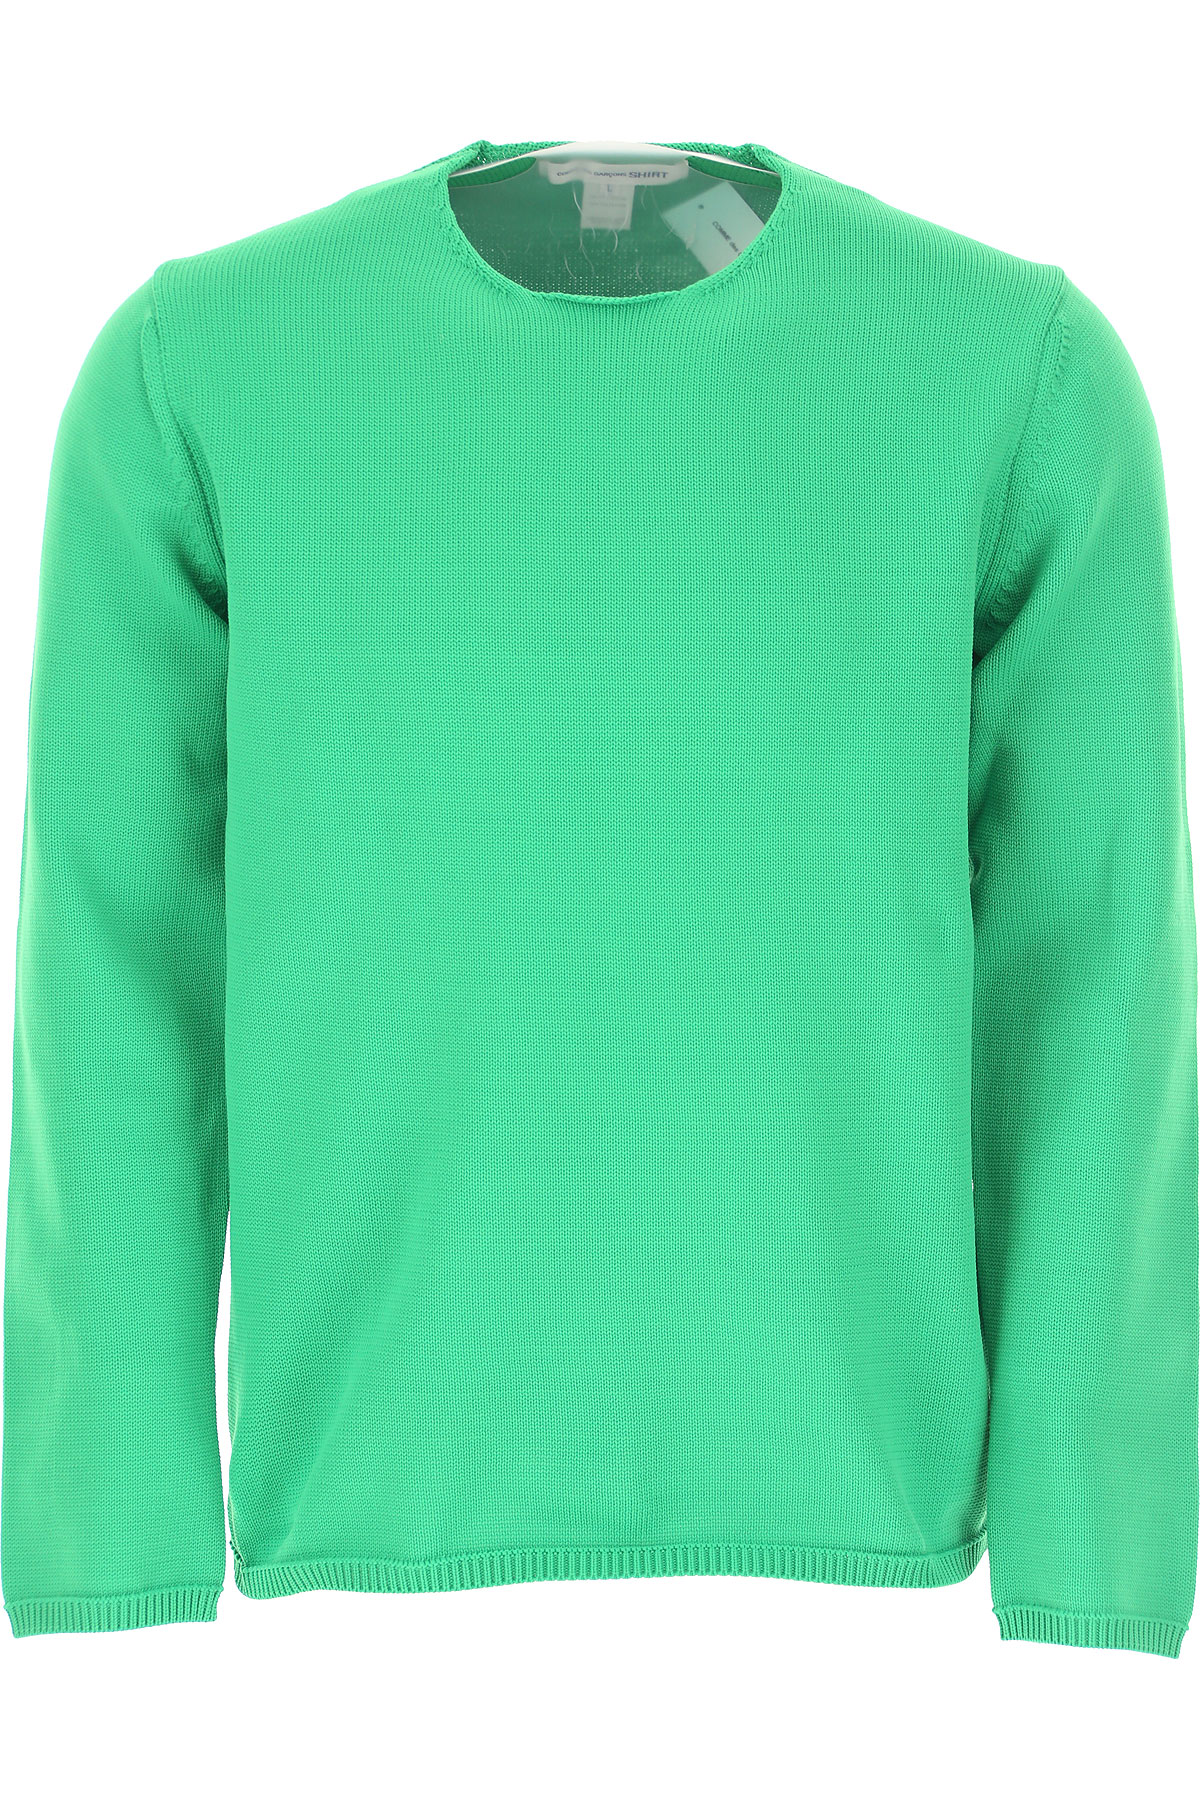 Comme des Garcons Sweater for Men Jumper On Sale, Grass Green, polyester, 2019, L M S XL